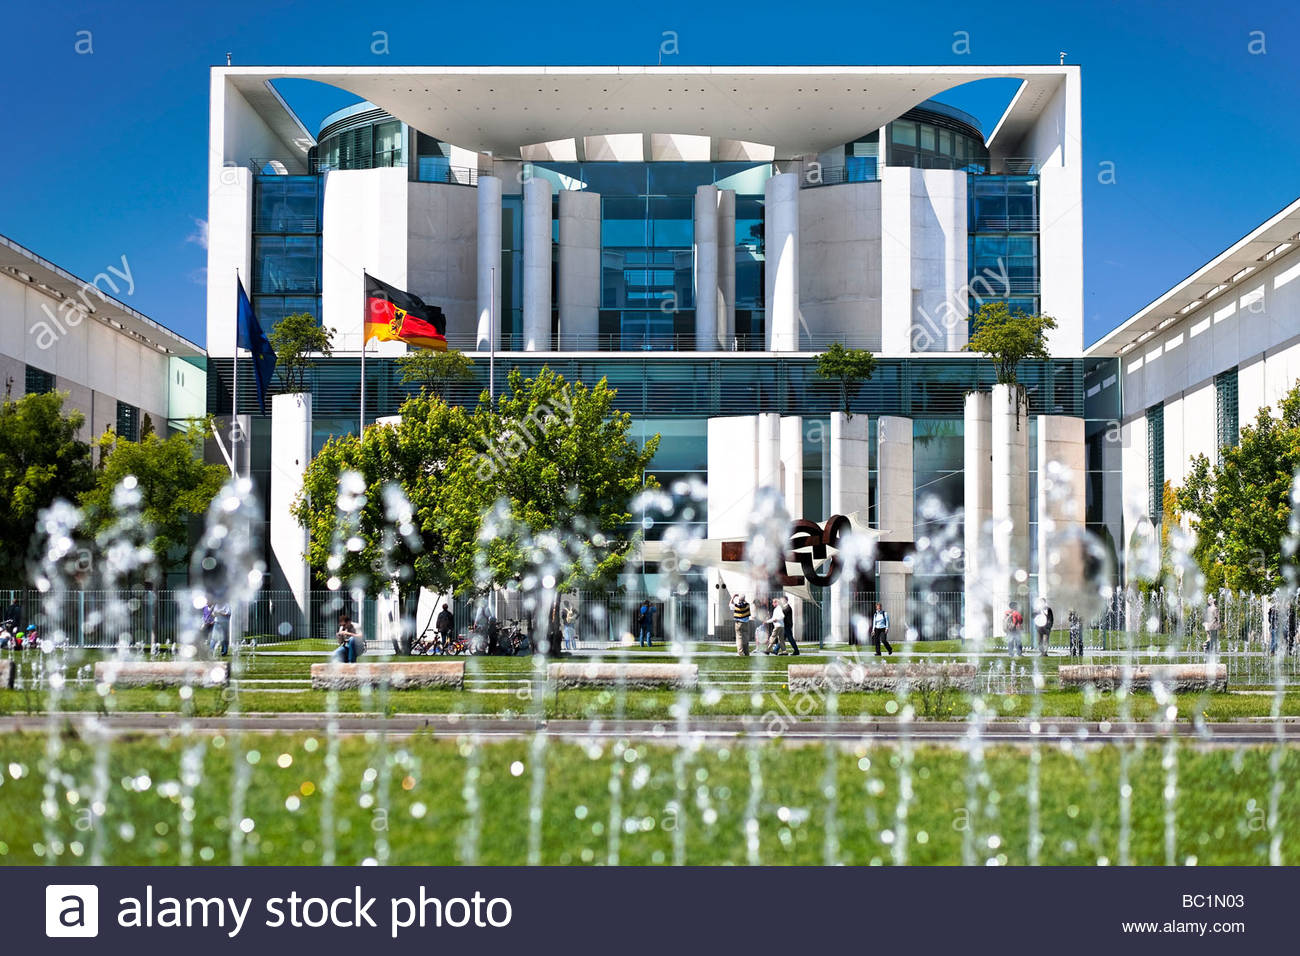 German federal chancellery building, Berlin, Germany - Stock Image